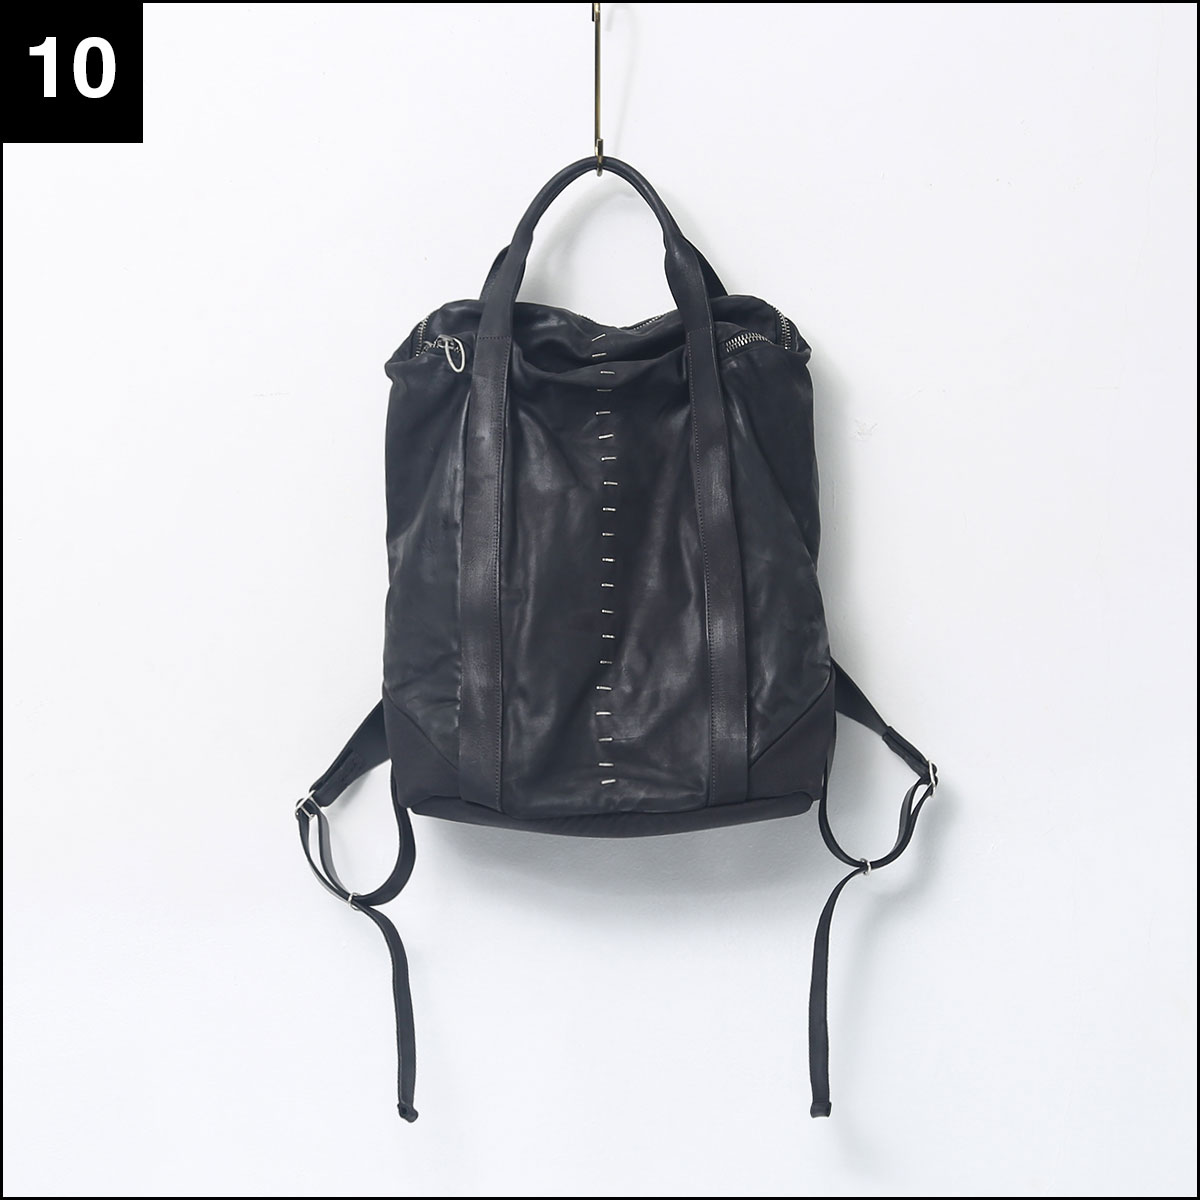 DANIELE BASTA_BULL LEATHER BACKPACK